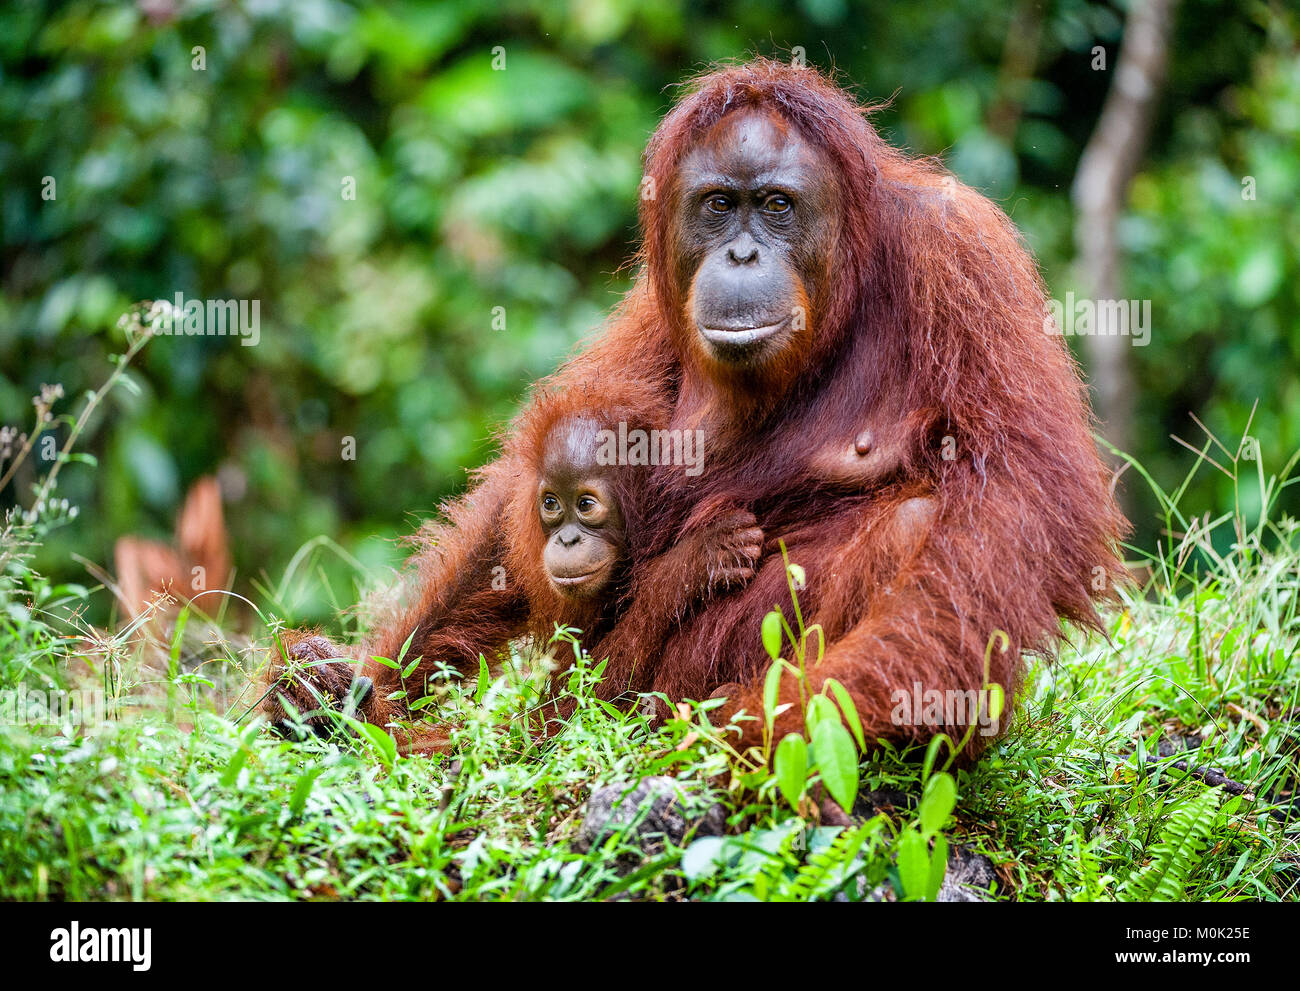 A female of the orangutan with a cub in a native habitat. Bornean orangutan (Pongo pygmaeus) in the wild nature.Rainforest - Stock Image